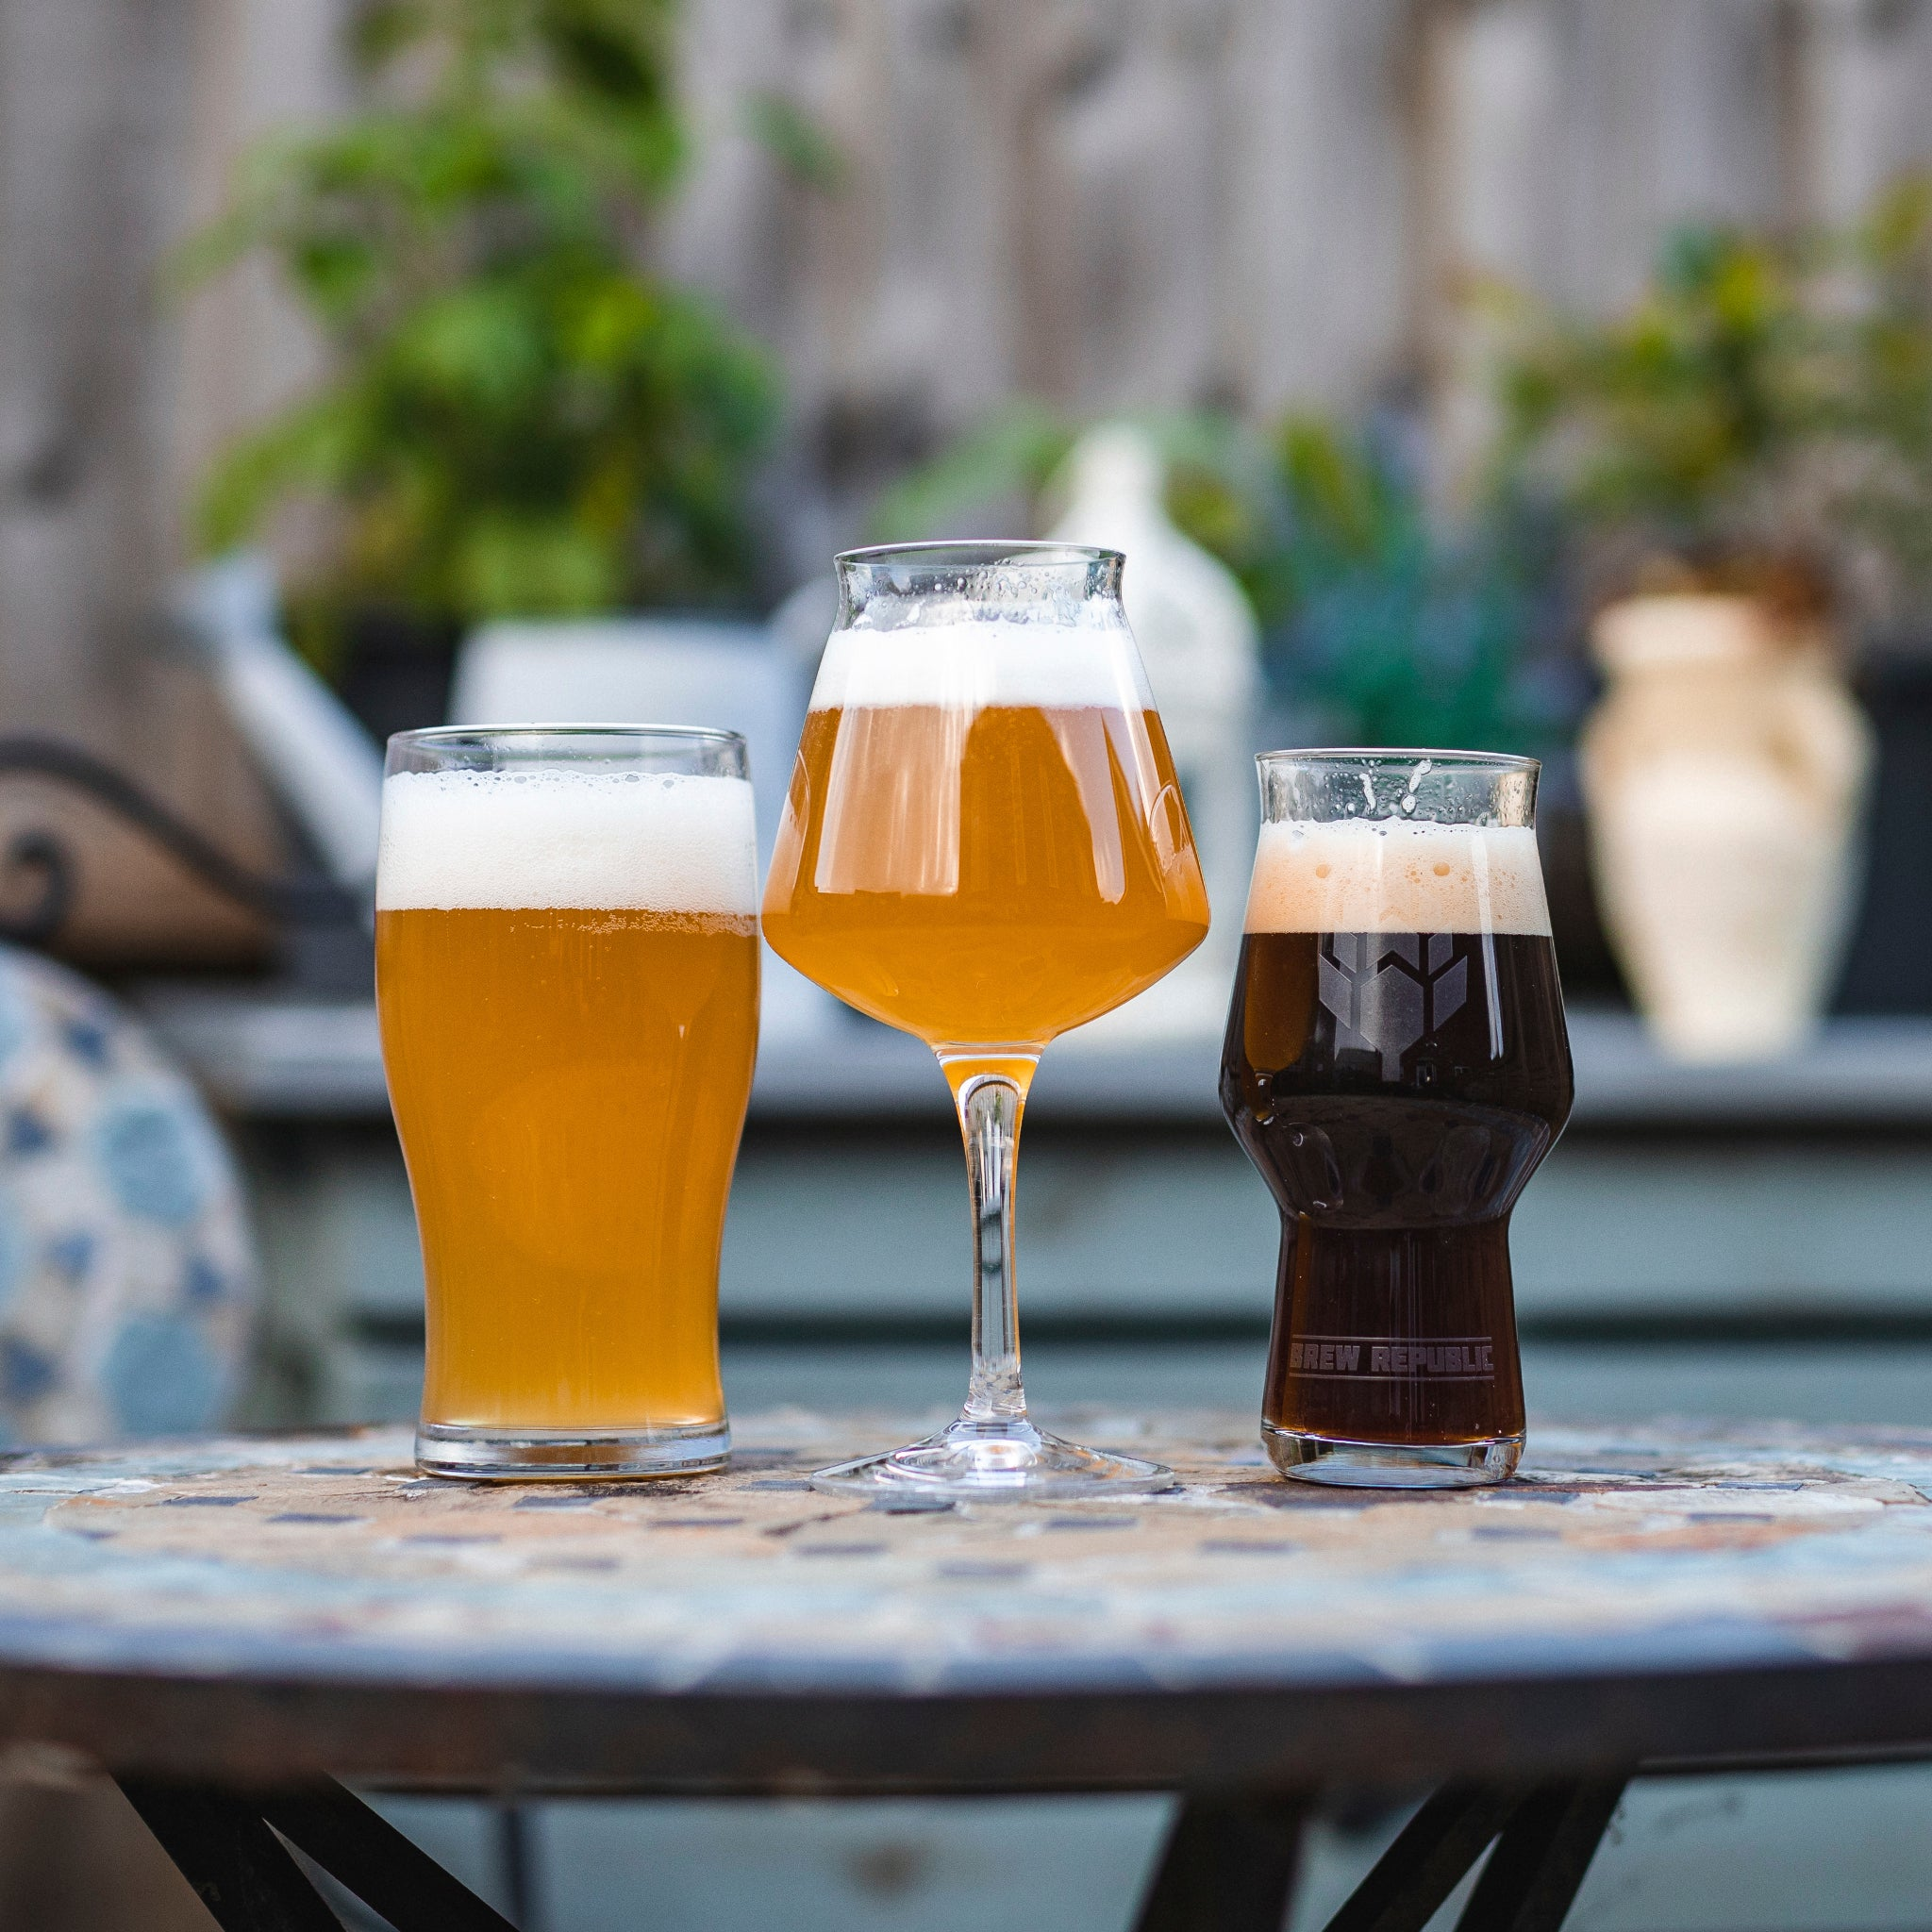 craft beer in glasses on table